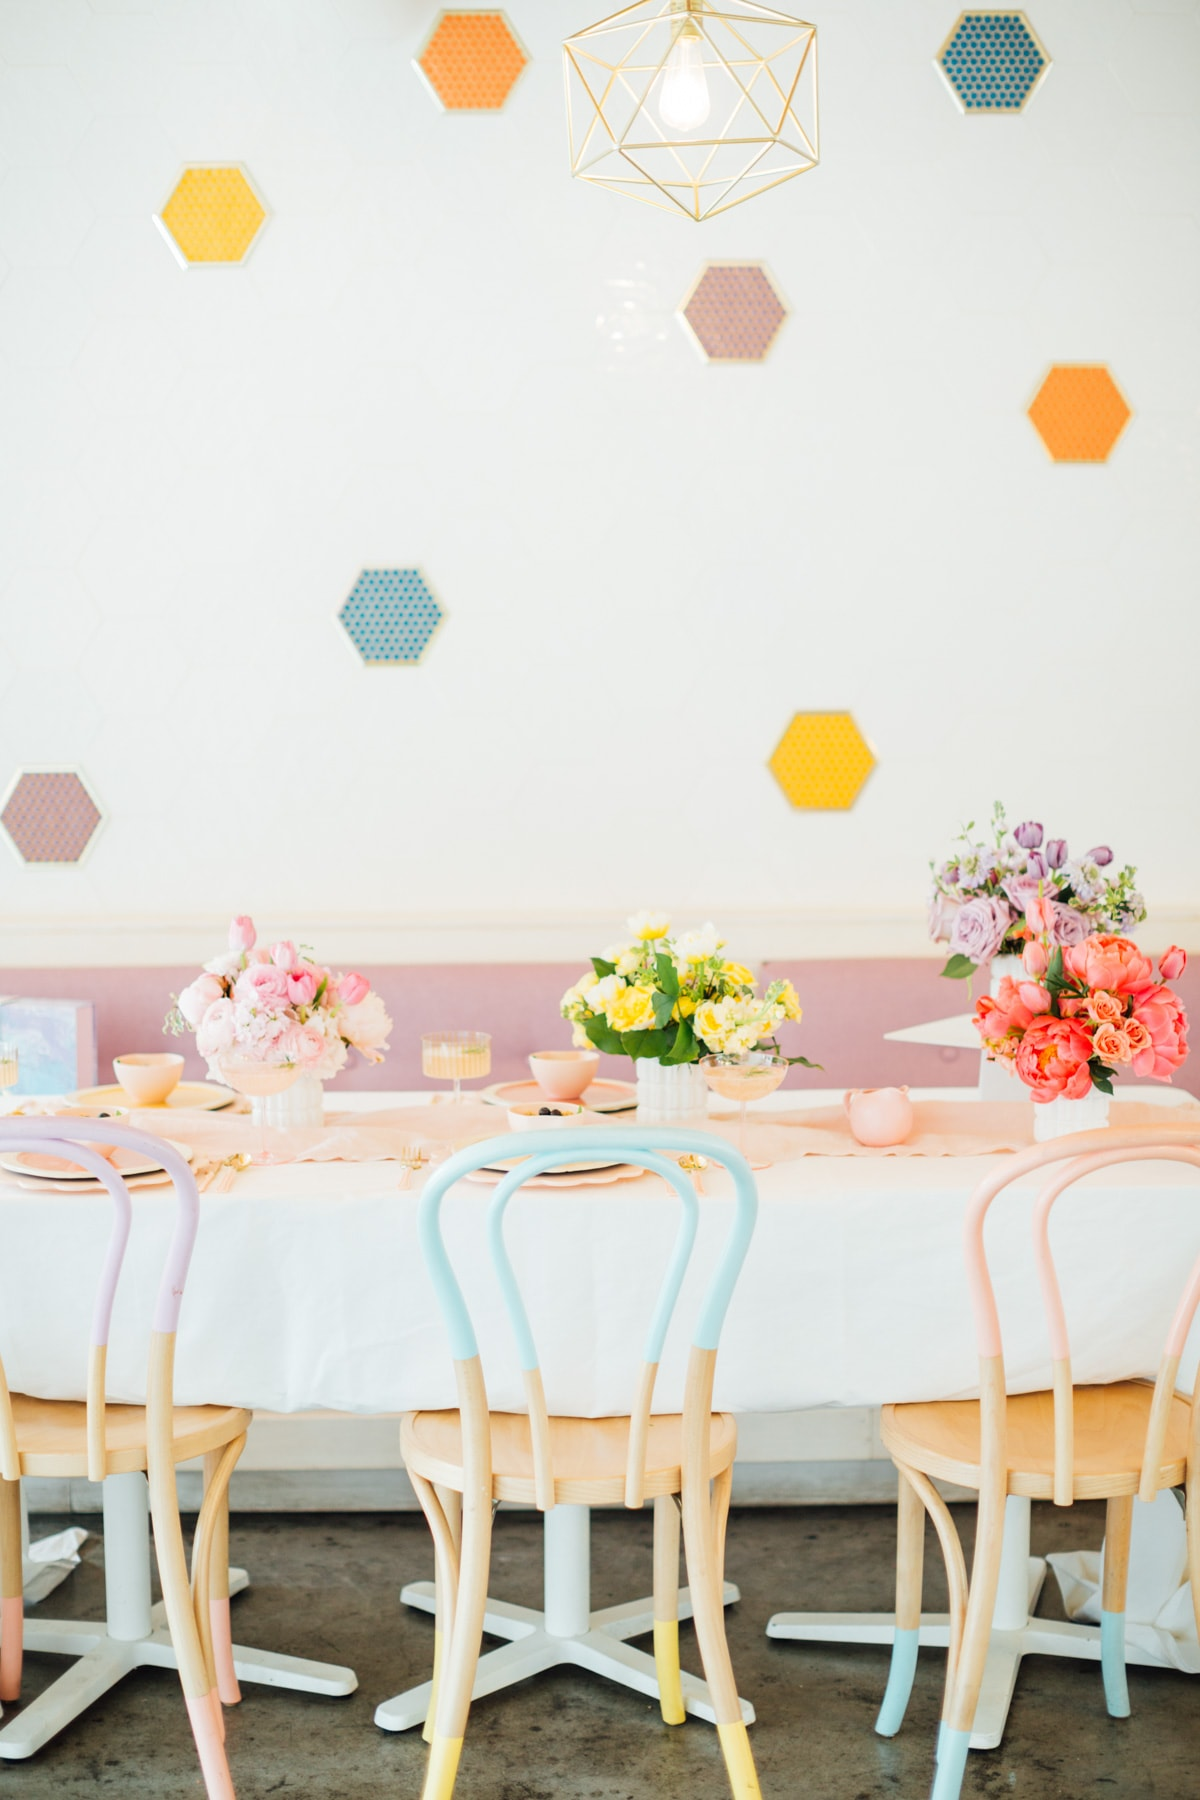 colorblock chairs! A Perfectly Pastel Easter Table Idea by top Houston lifestyle blogger Ashley Rose of Sugar & Cloth #diy #tablescape #ideas #easter #pastel #party #decorations #brunch #bridalshower #bridal #shower #baby